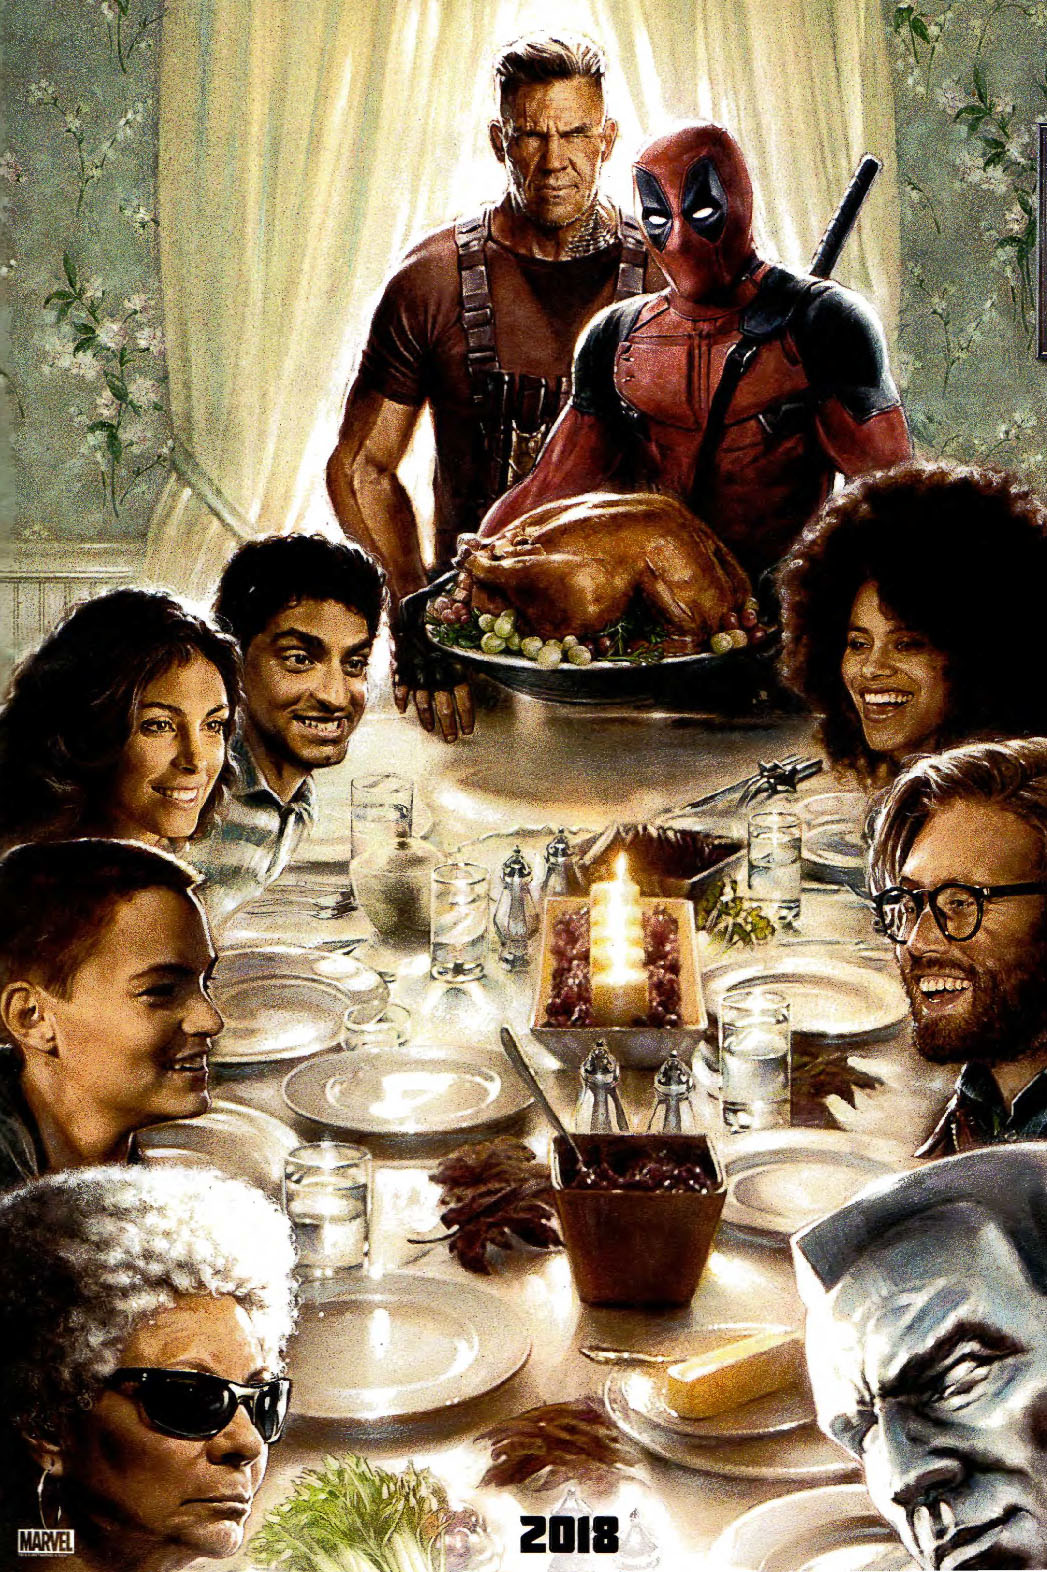 Deadpool 2: All in the Family